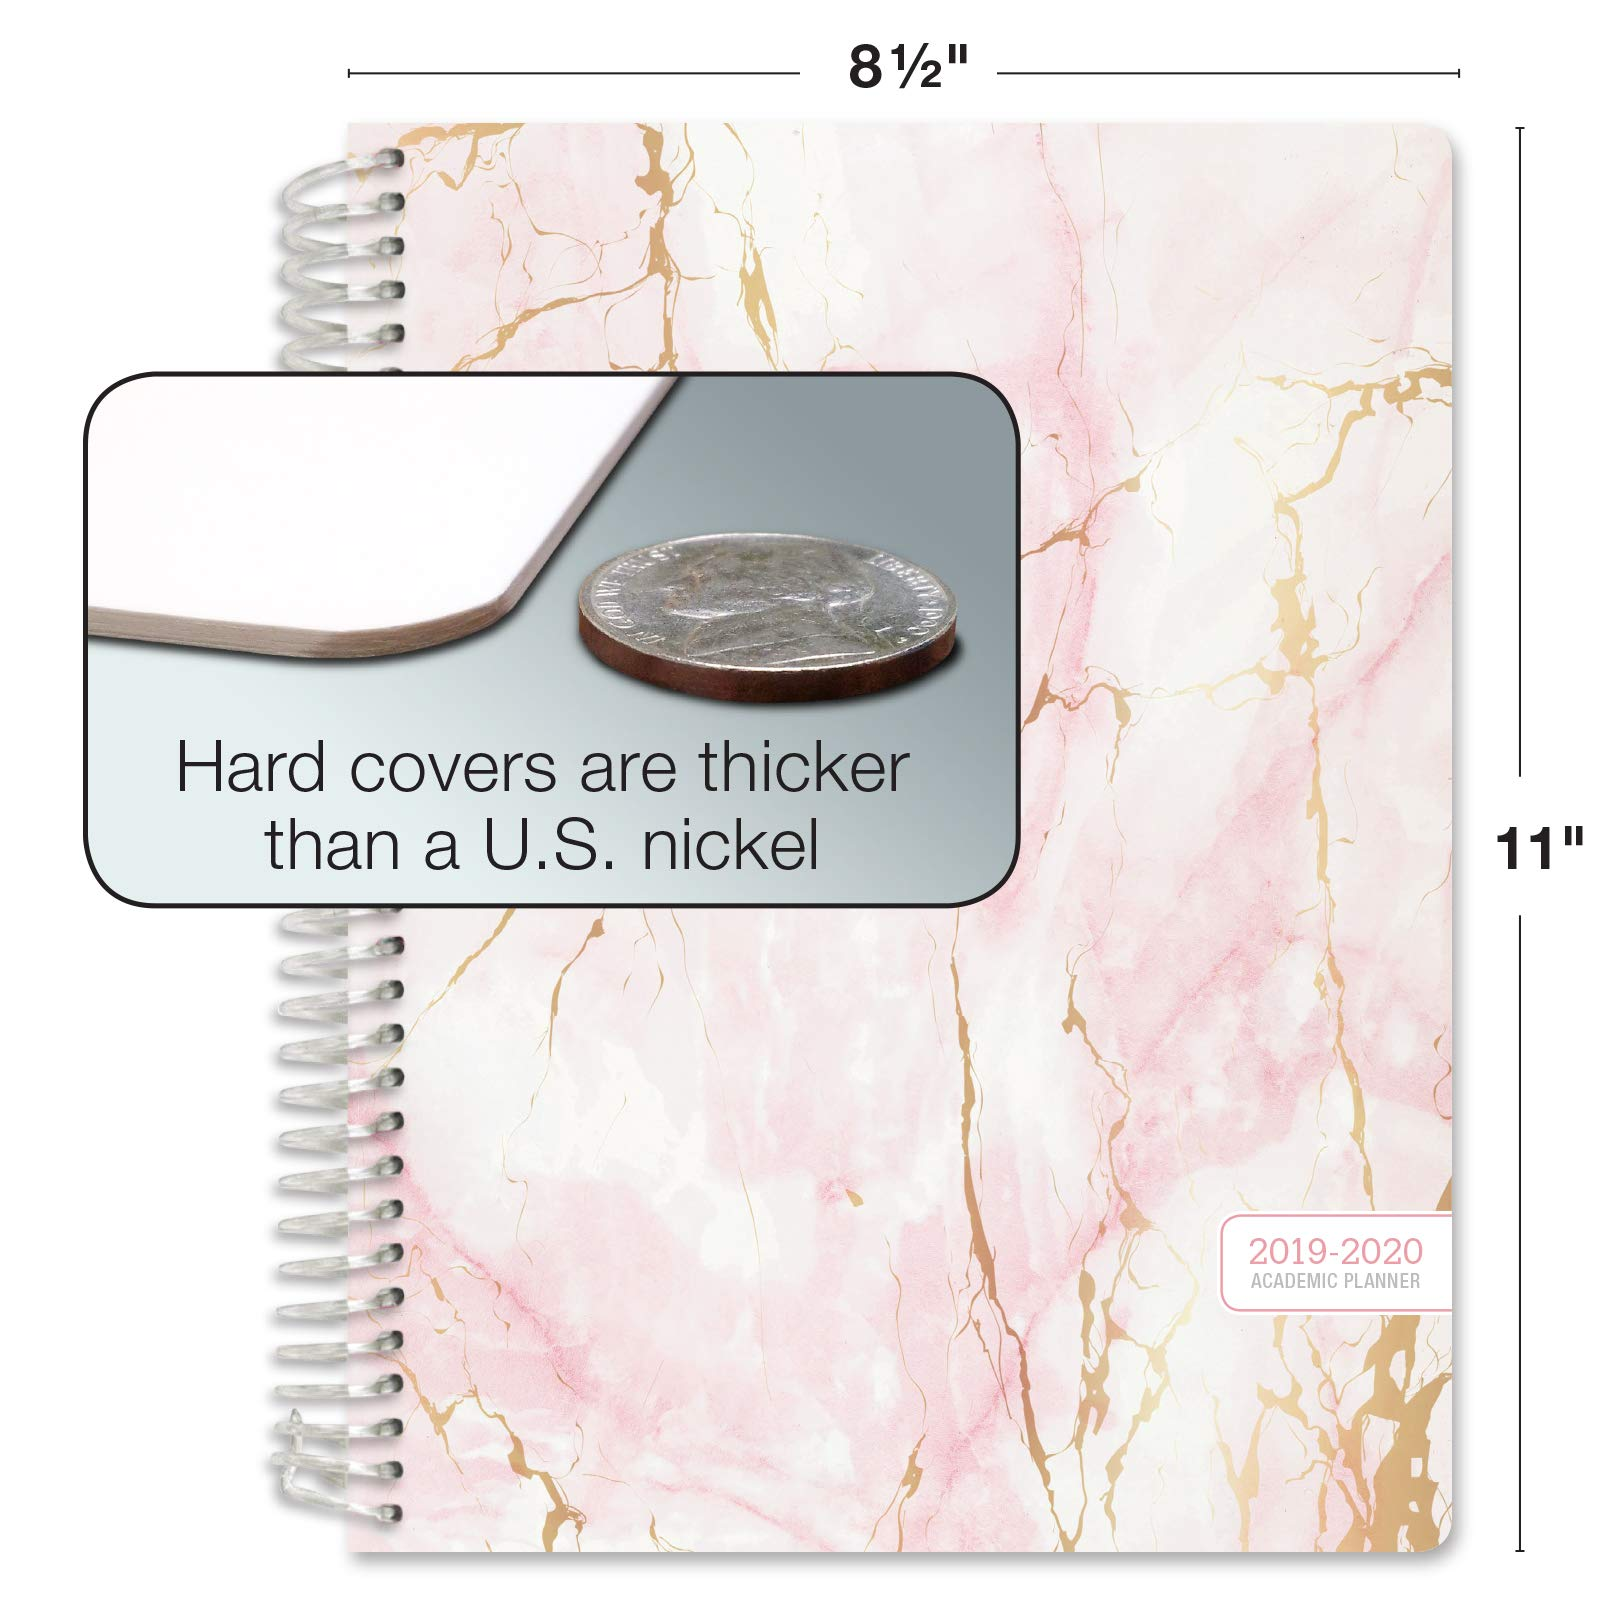 HARDCOVER Academic Year 2019-2020 Planner: (June 2019 Through July 2020) 8.5''x11'' Daily Weekly Monthly Planner Yearly Agenda. Bonus Bookmark, Pocket Folder and Sticky Note Set (Pink Marble) by Global Printed Products (Image #7)